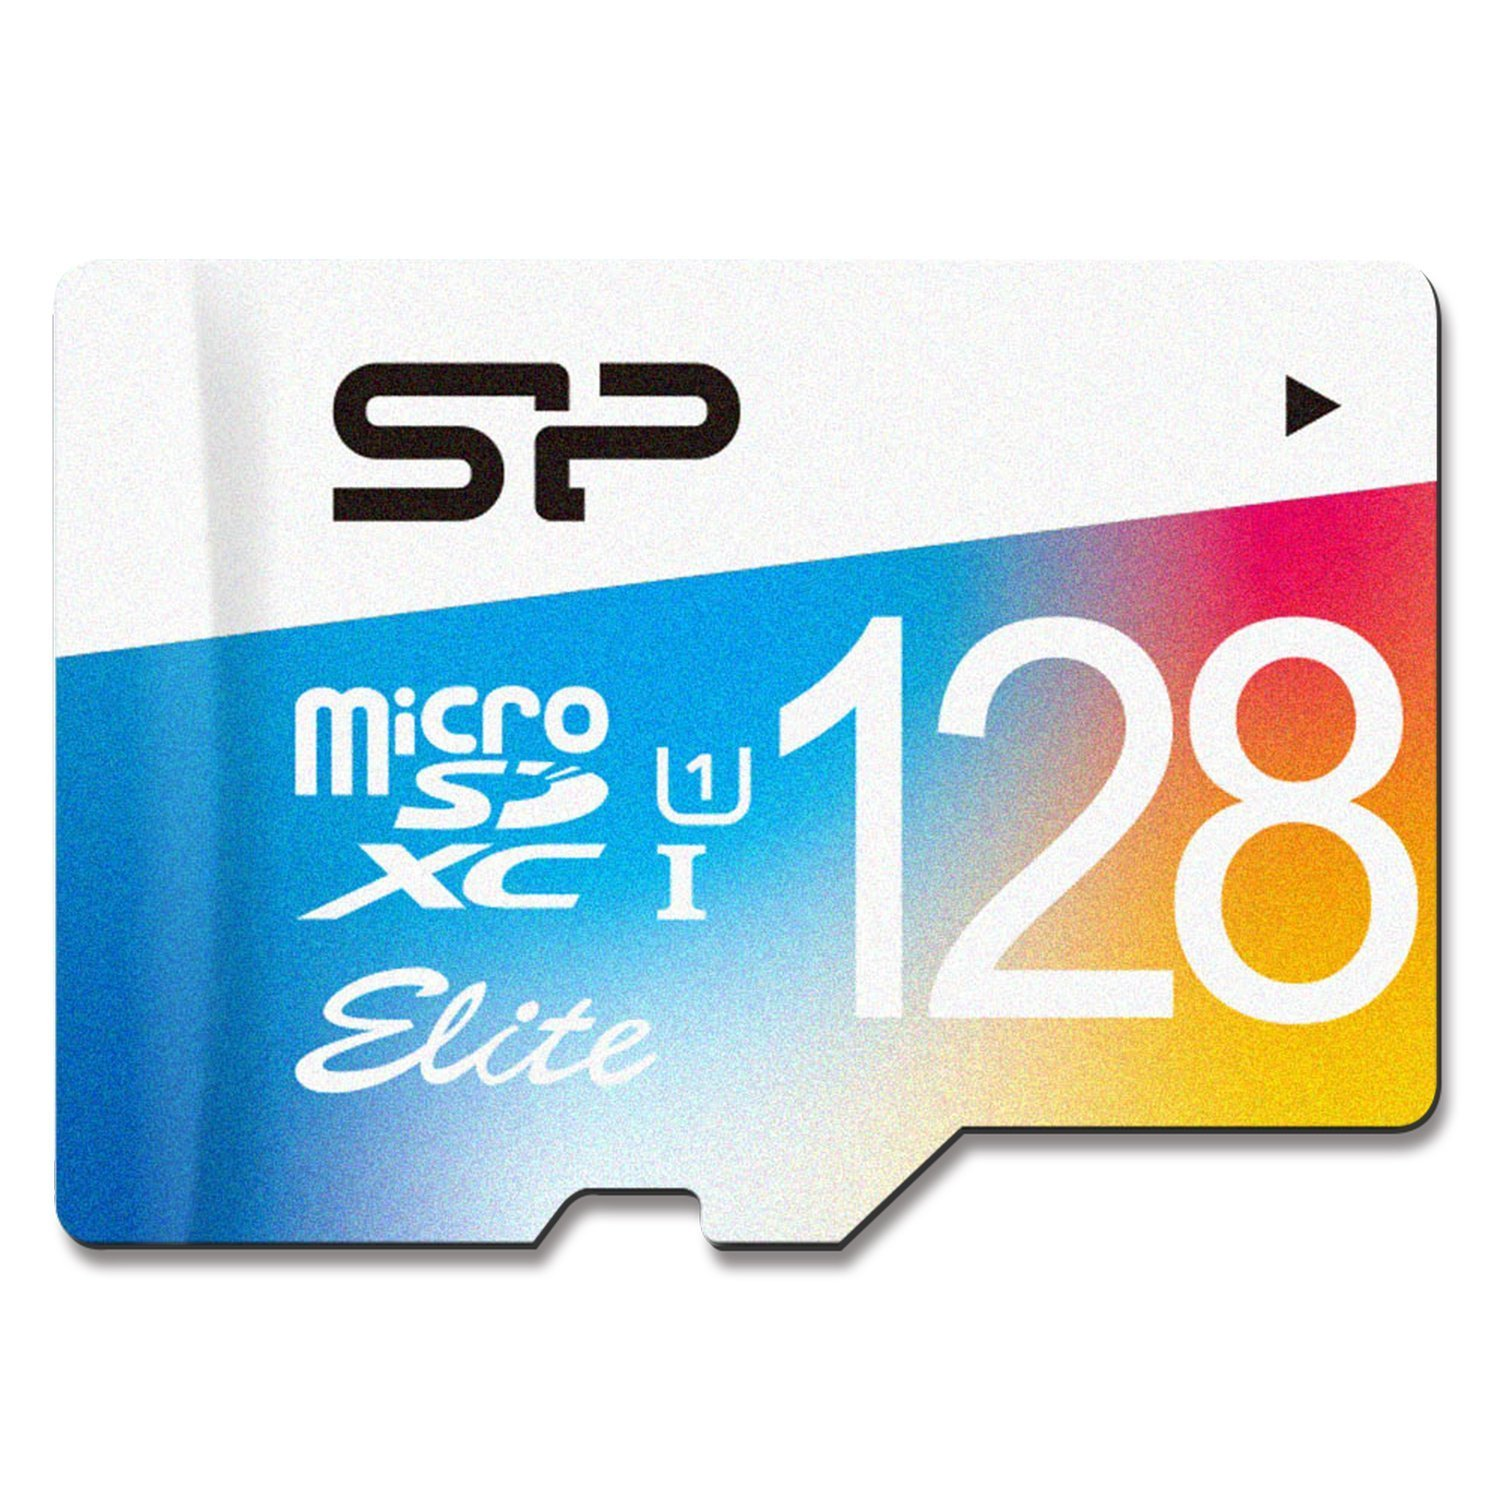 Silicon Power 128GB MicroSDXC UHS-1 Class10, Elite Flash memory Card with Adapter (SP128GBSTXBU1V20AI)